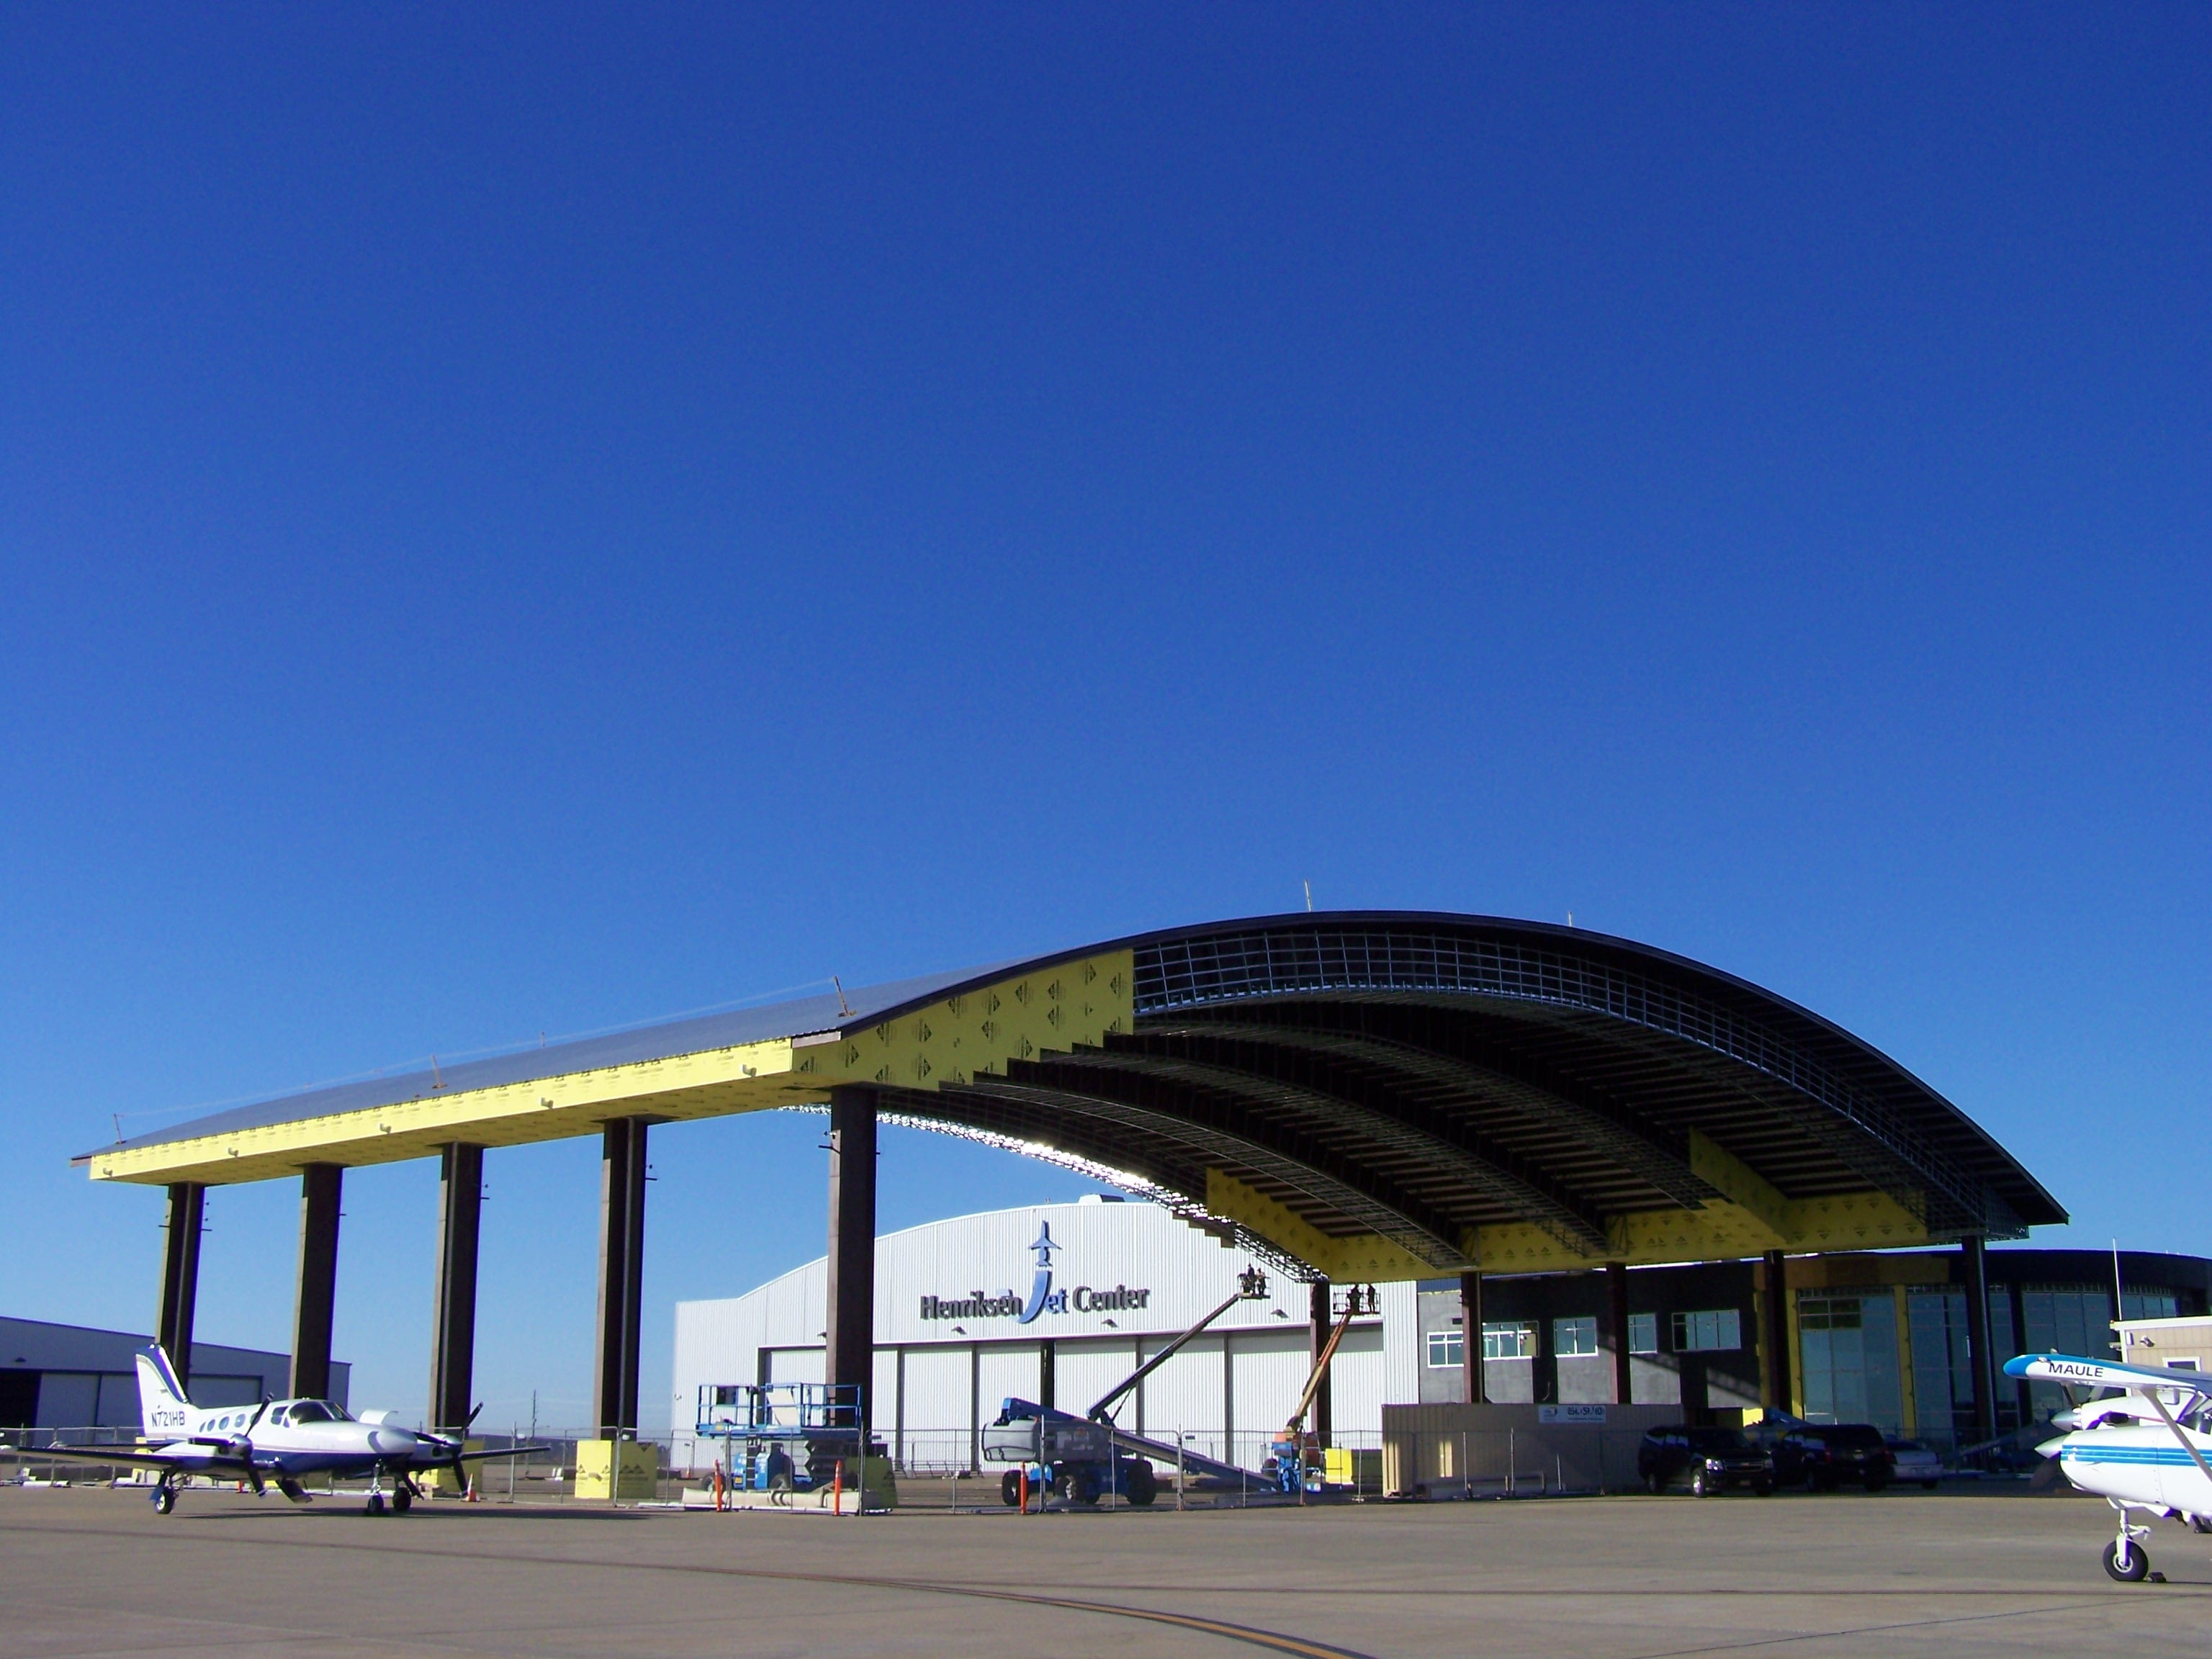 FBO at TME claims to be building world's largest arrival canopy